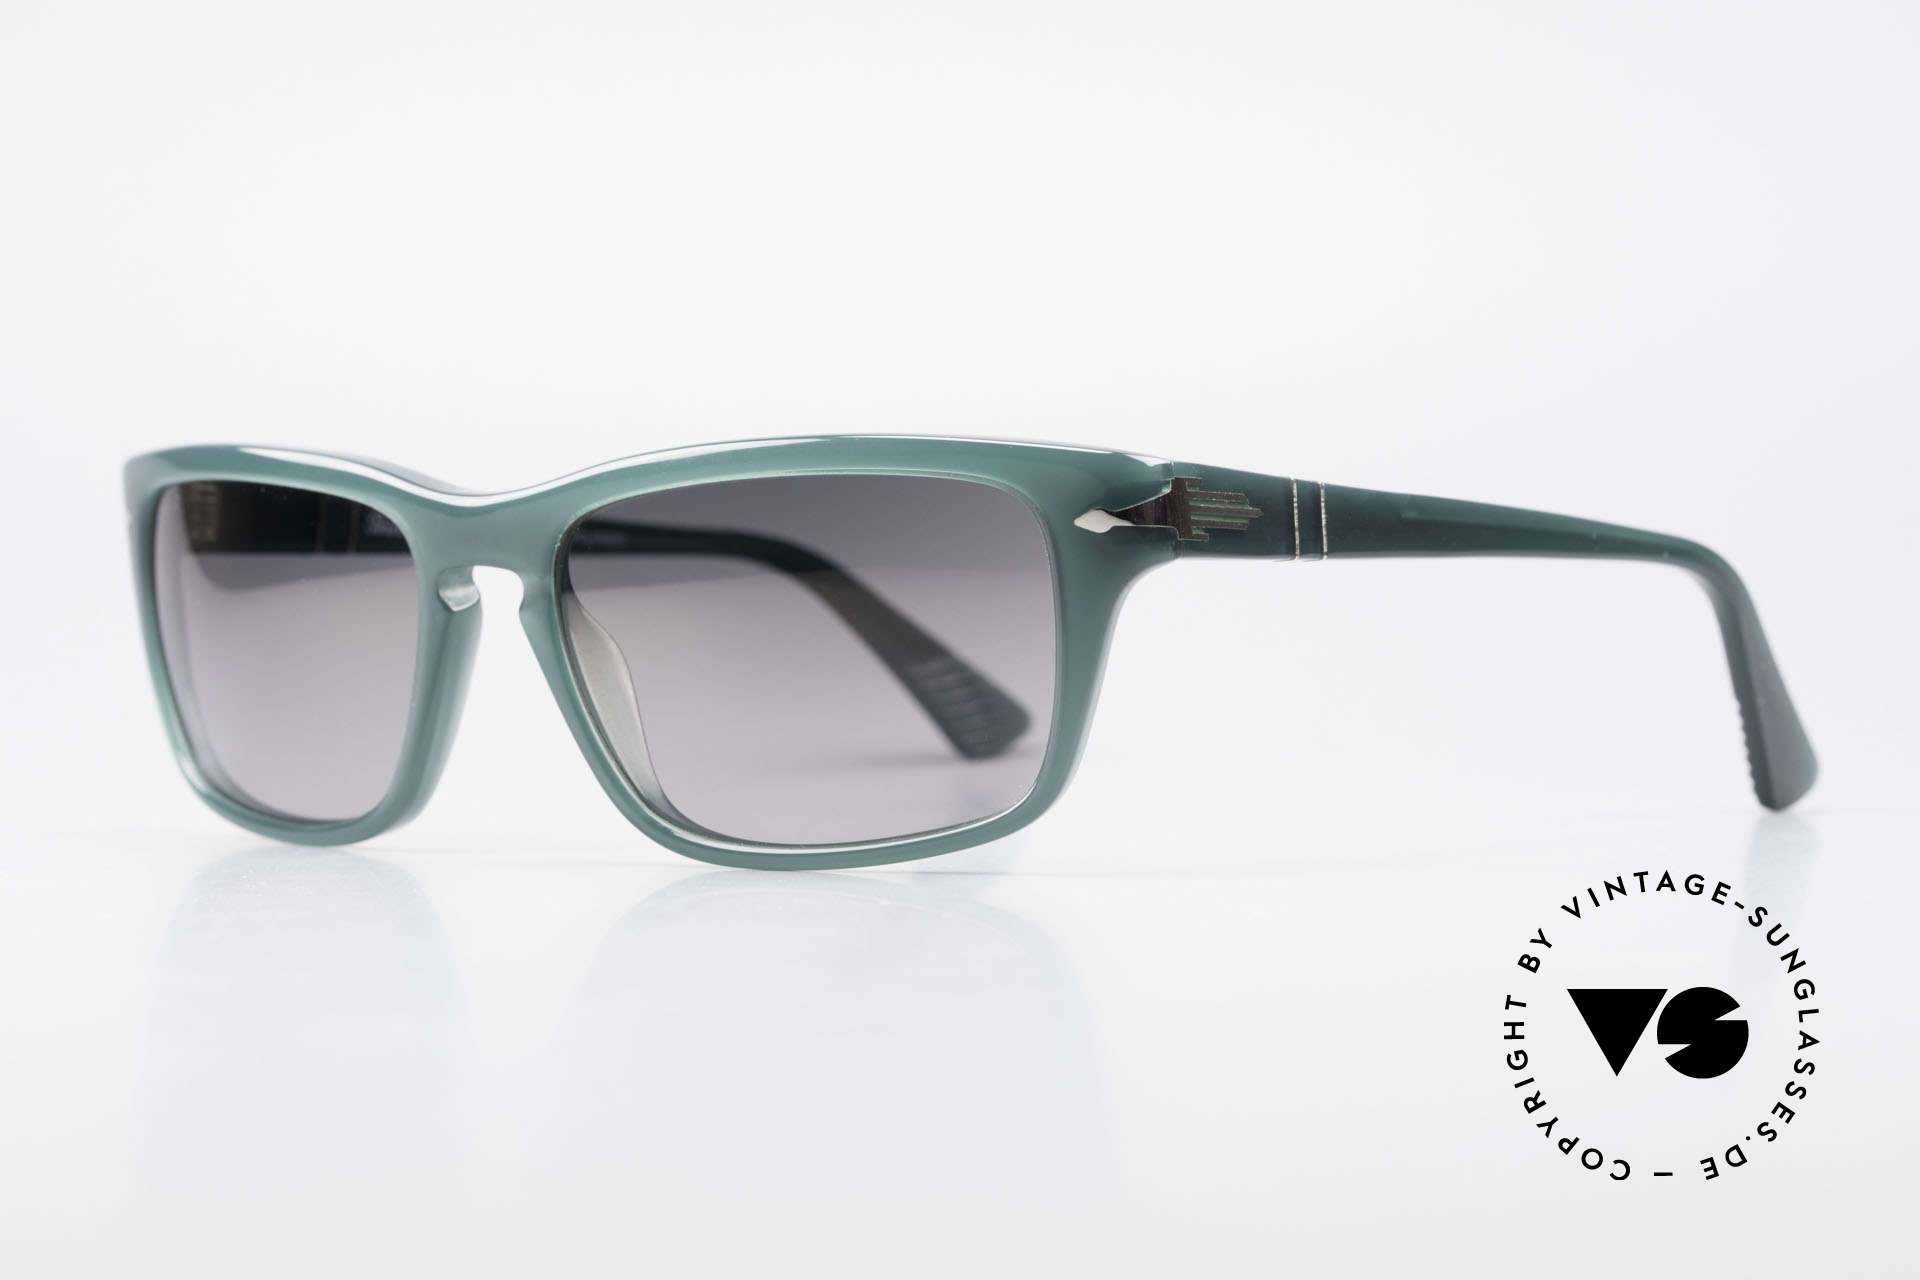 Persol 3074 Film Noir Edition Polarized, polarized mineral lenses (100% UV protection), Made for Men